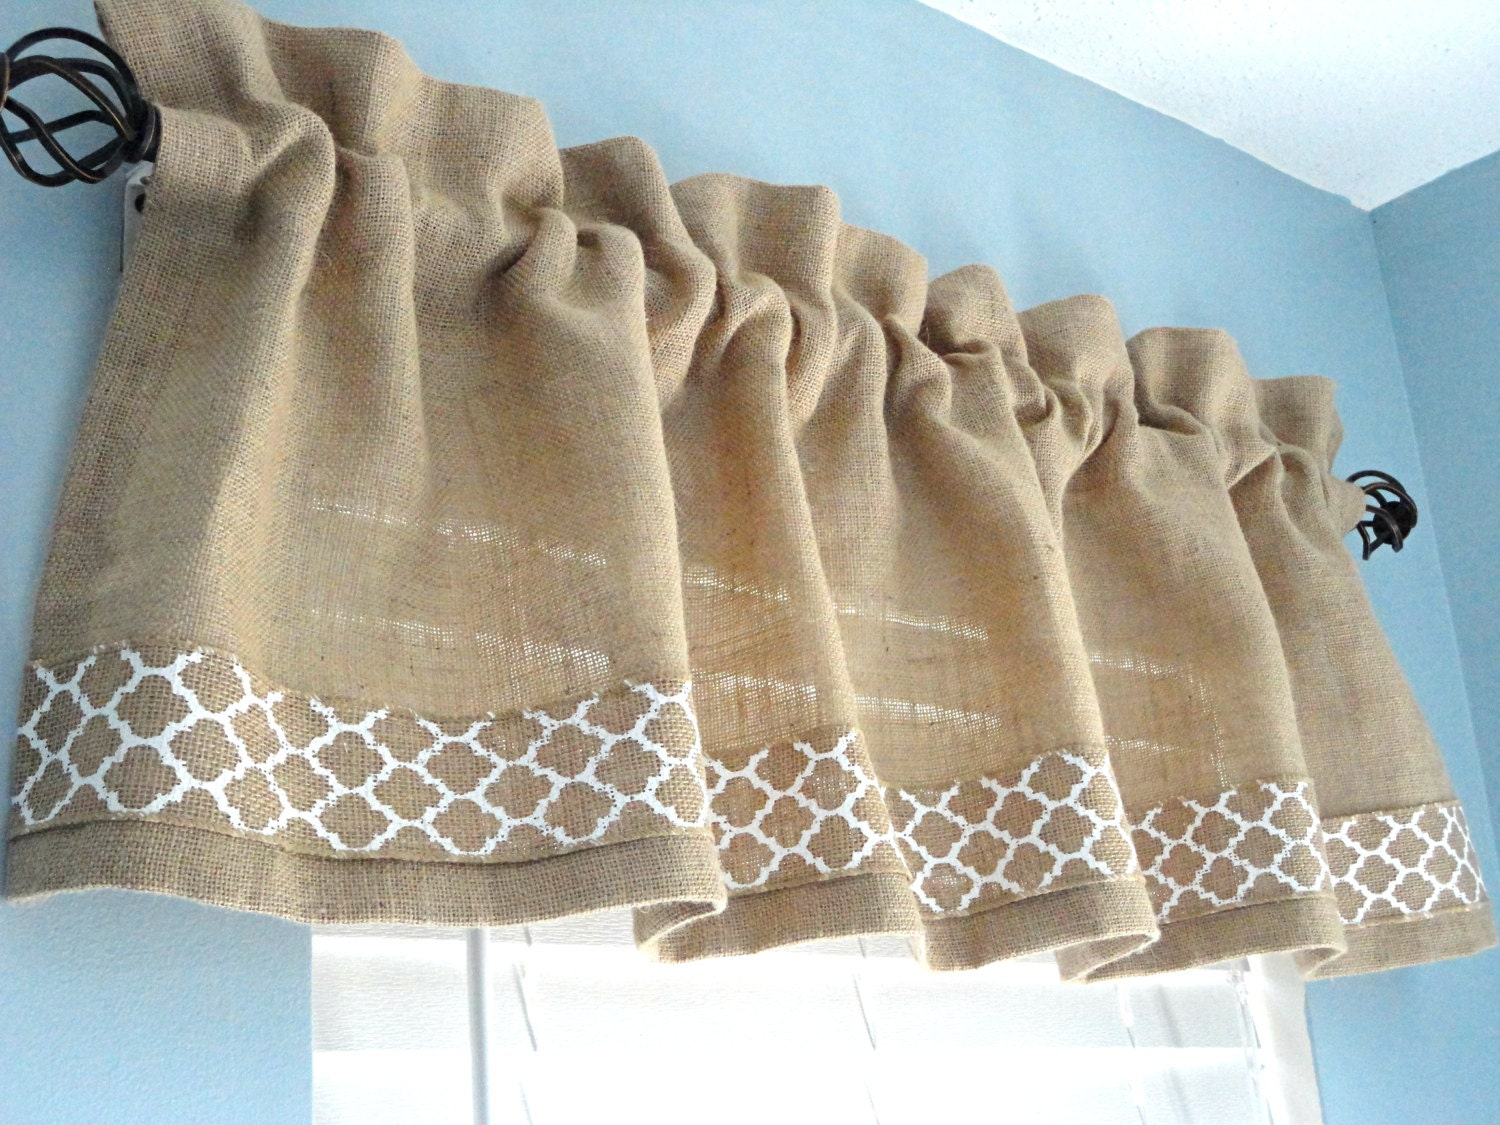 Burlap Valances For Windows : Burlap valance window housewares treatment